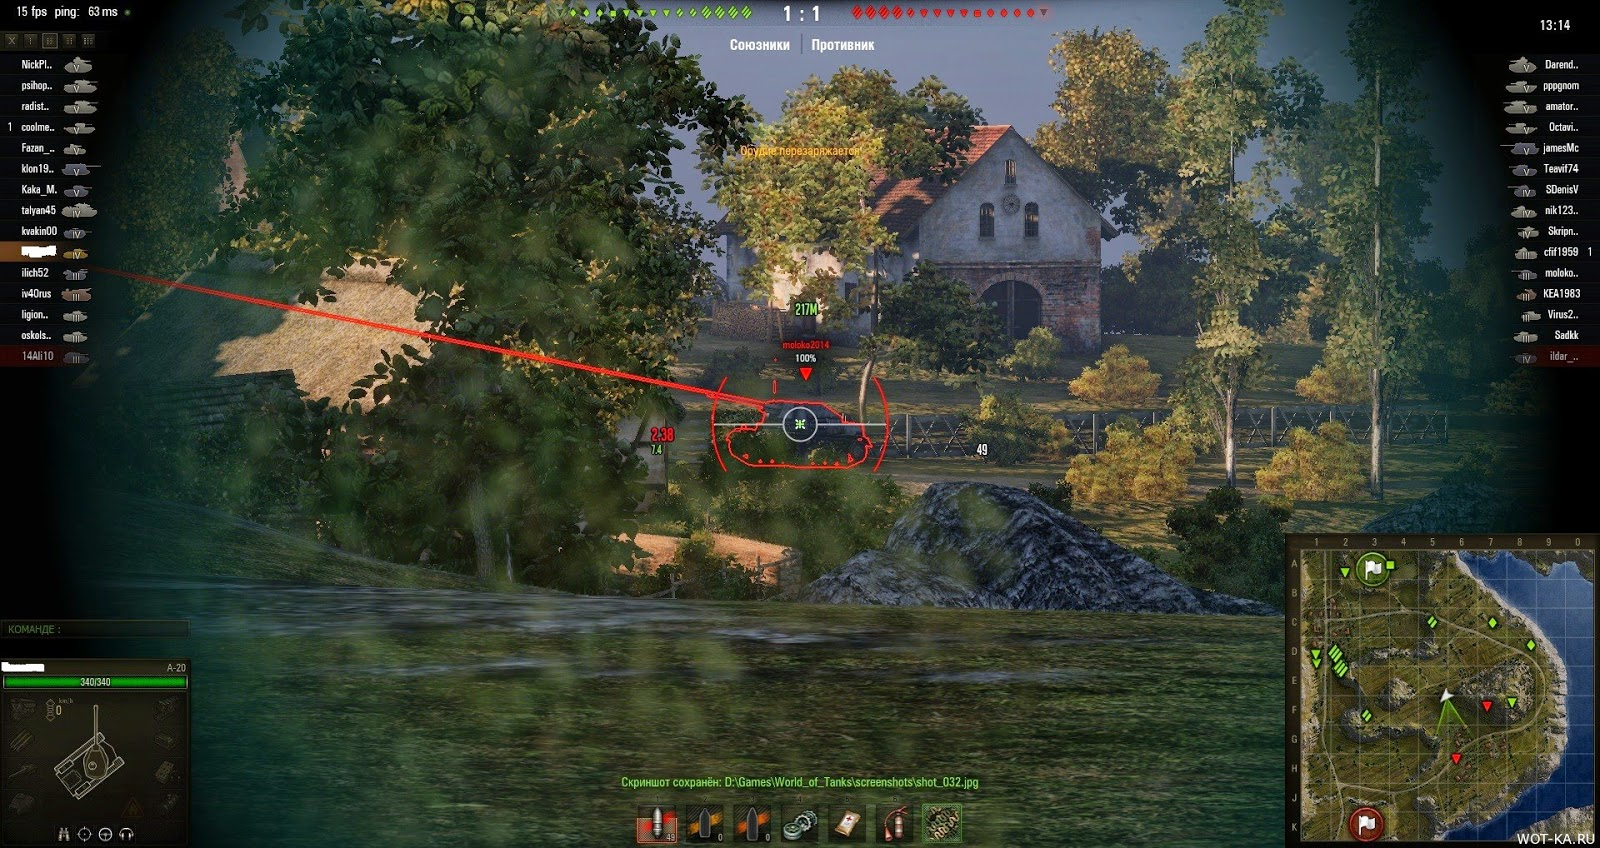 Hack-gry-android-chomikuj: World of tanks cheats